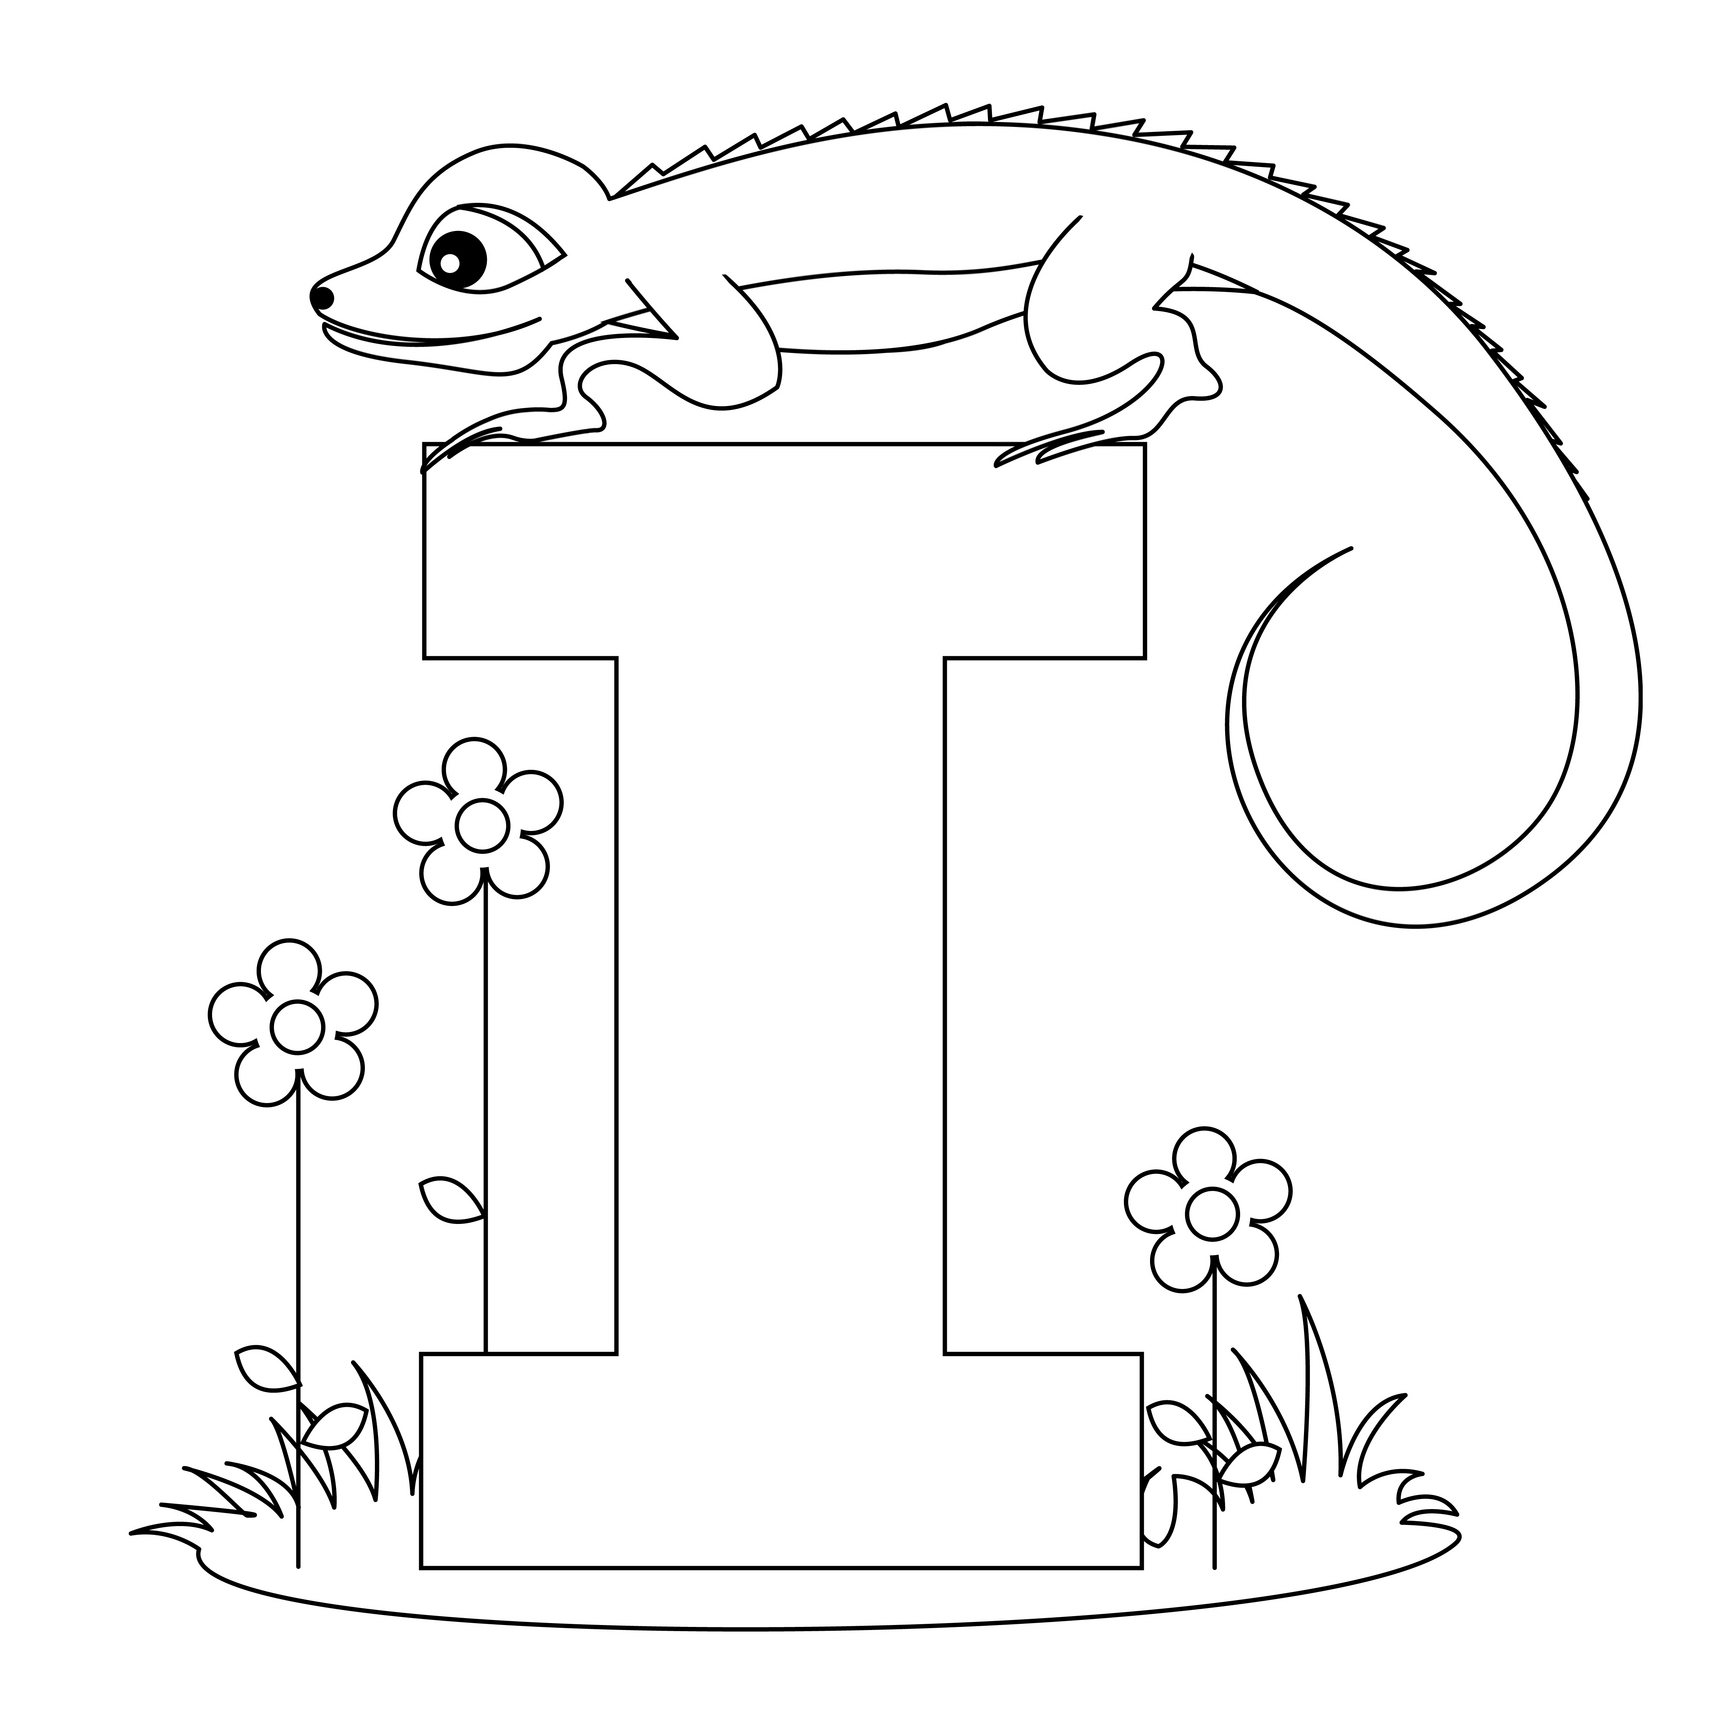 l alphabet coloring pages - photo #46